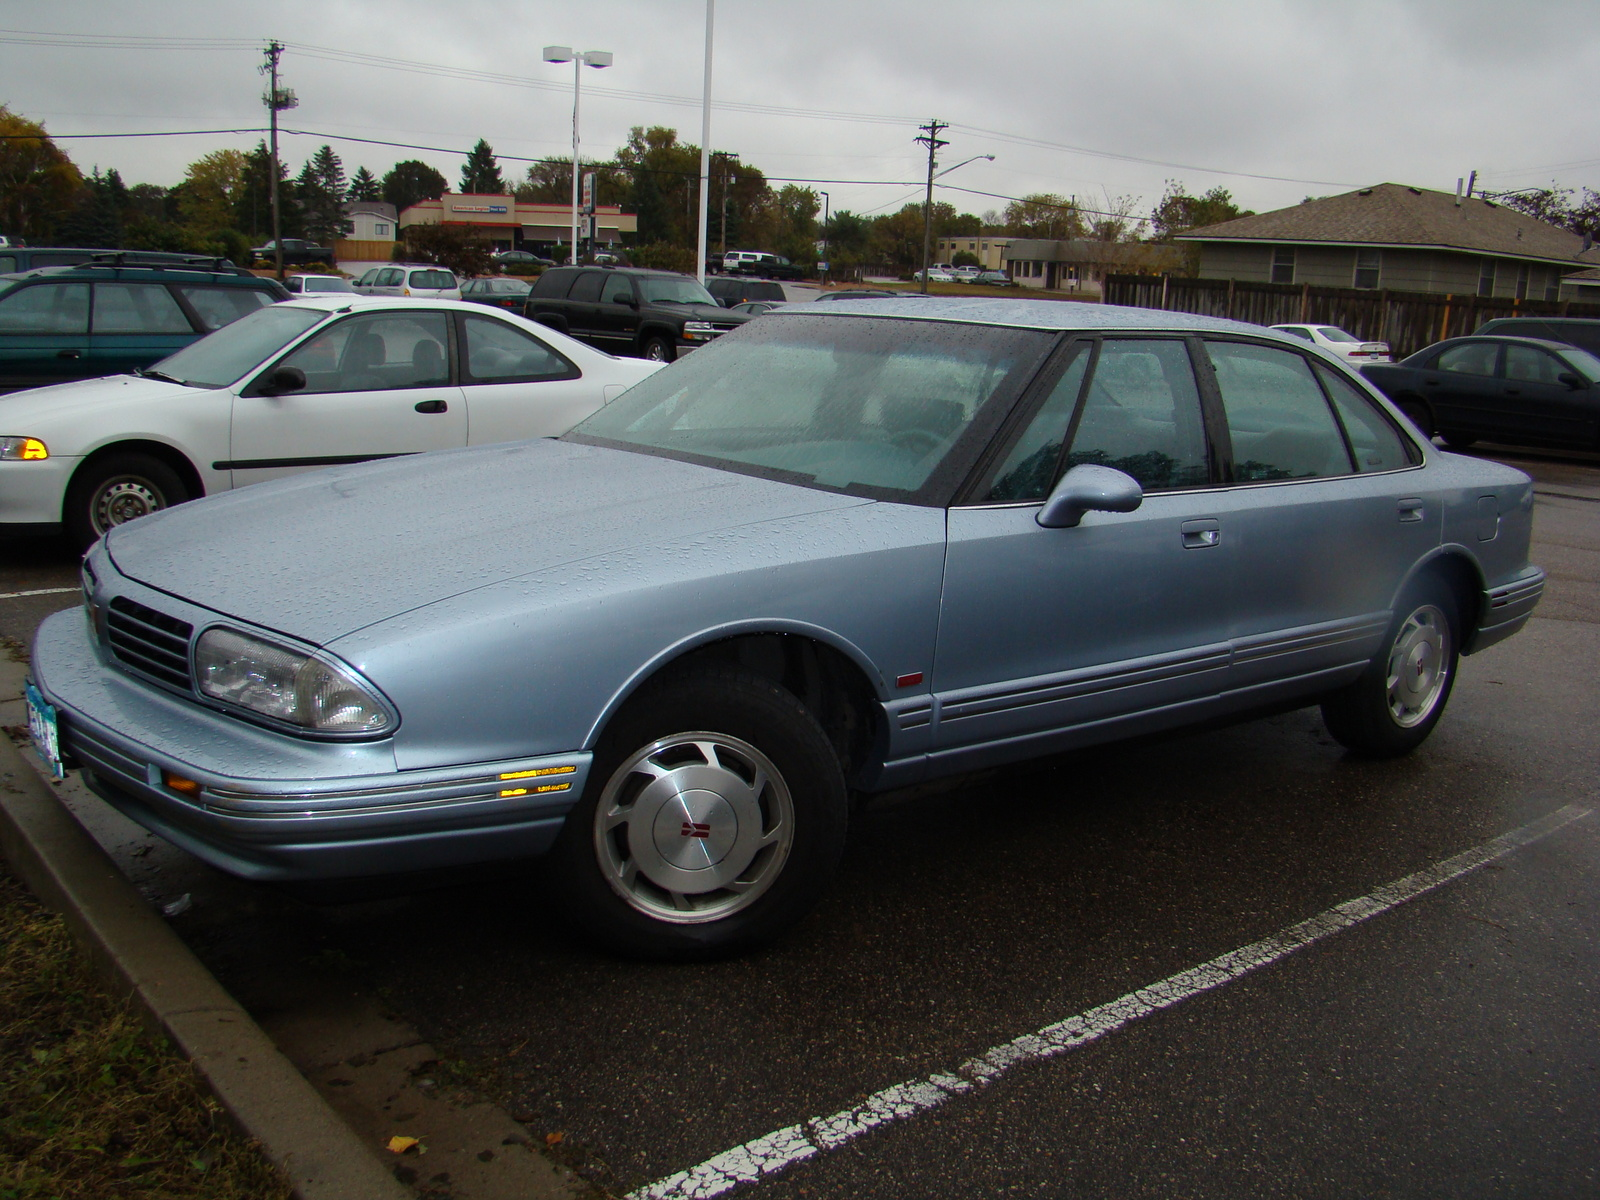 Picture of 1994 Oldsmobile Eighty-Eight Royale 4 Dr LSS Sedan, exterior